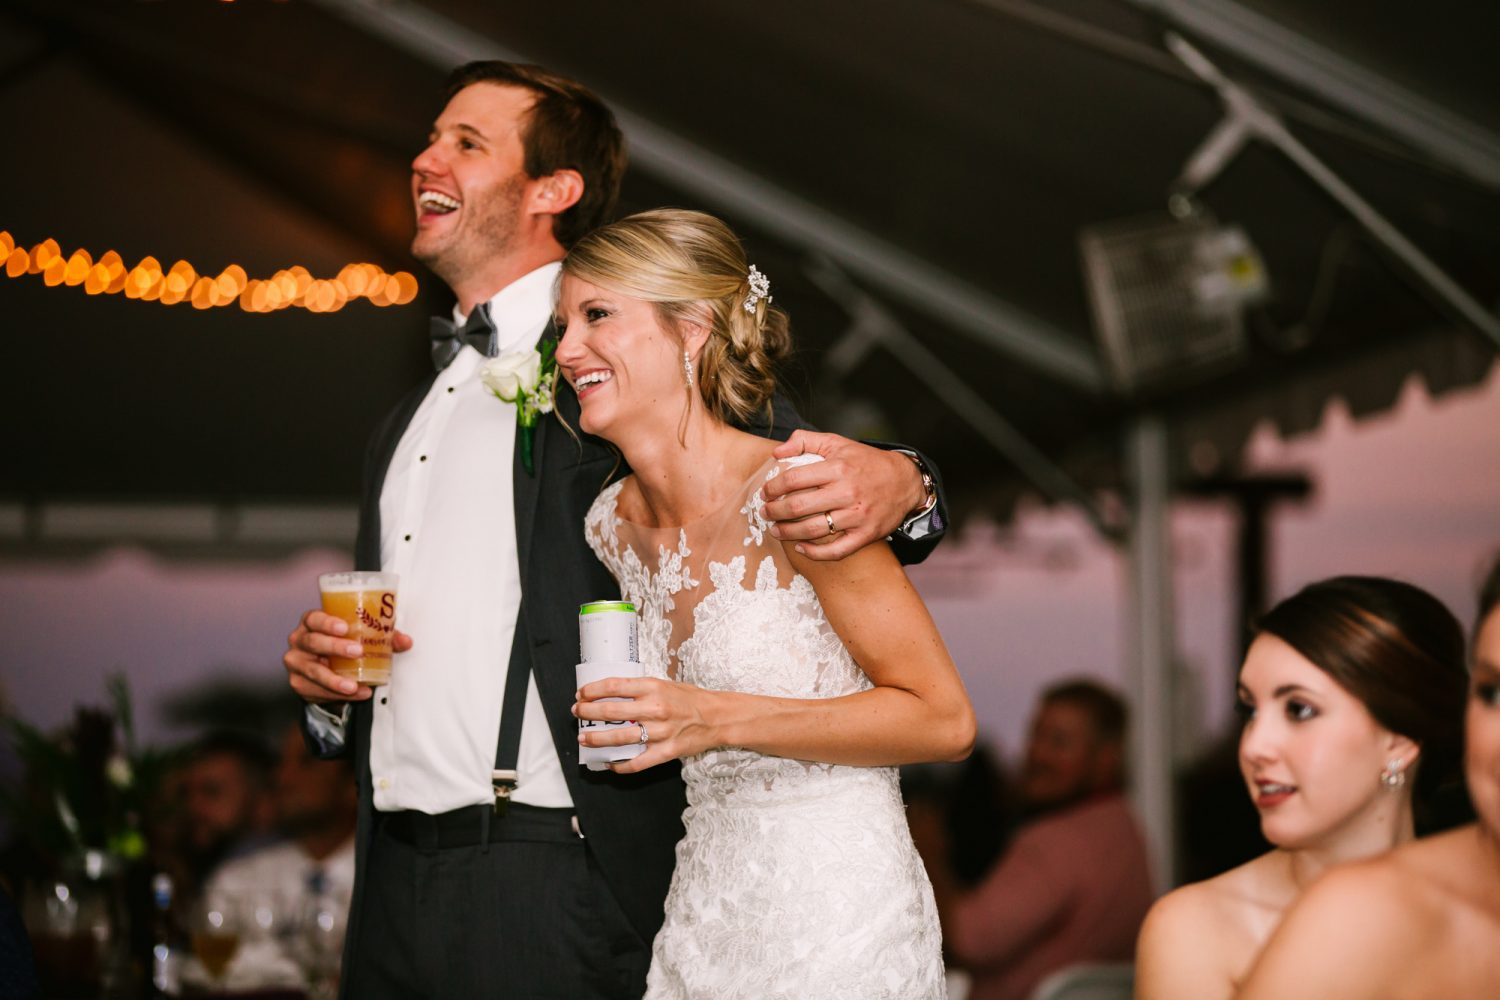 Waynesville, NC Wedding Photography | Bride and Groom Laughing at Speeches